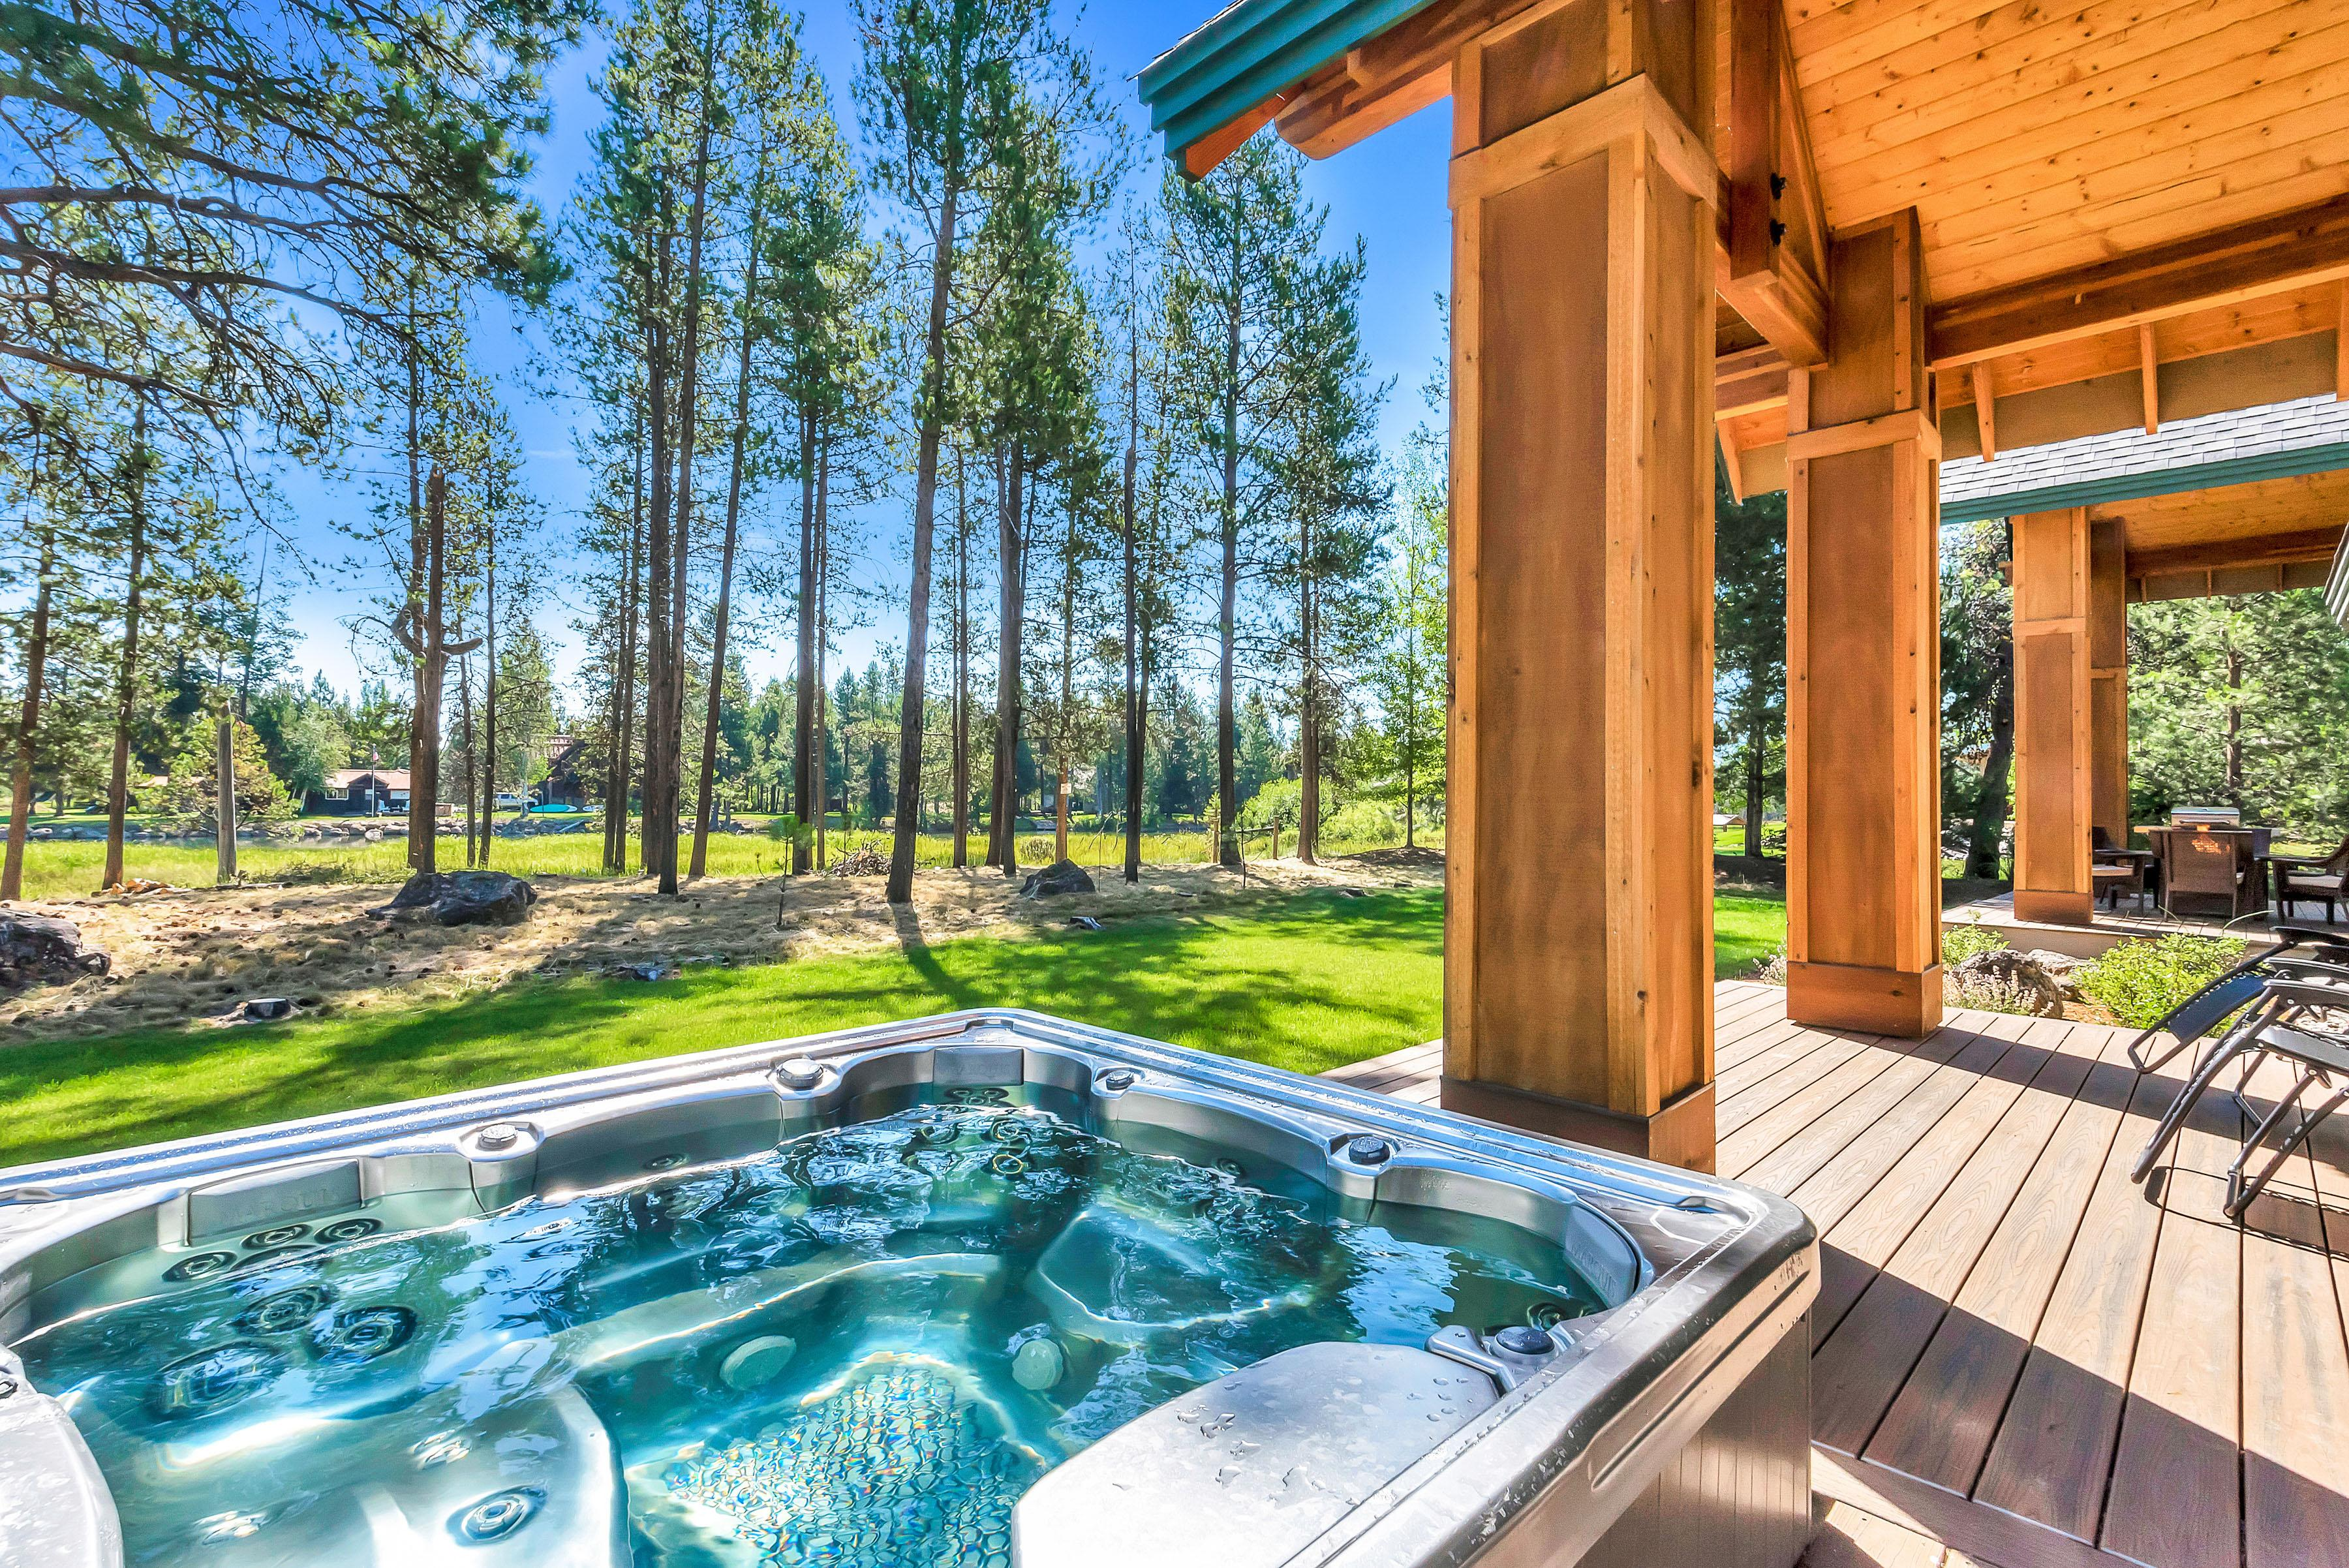 Soak in your private hot tub while enjoying views of the river.